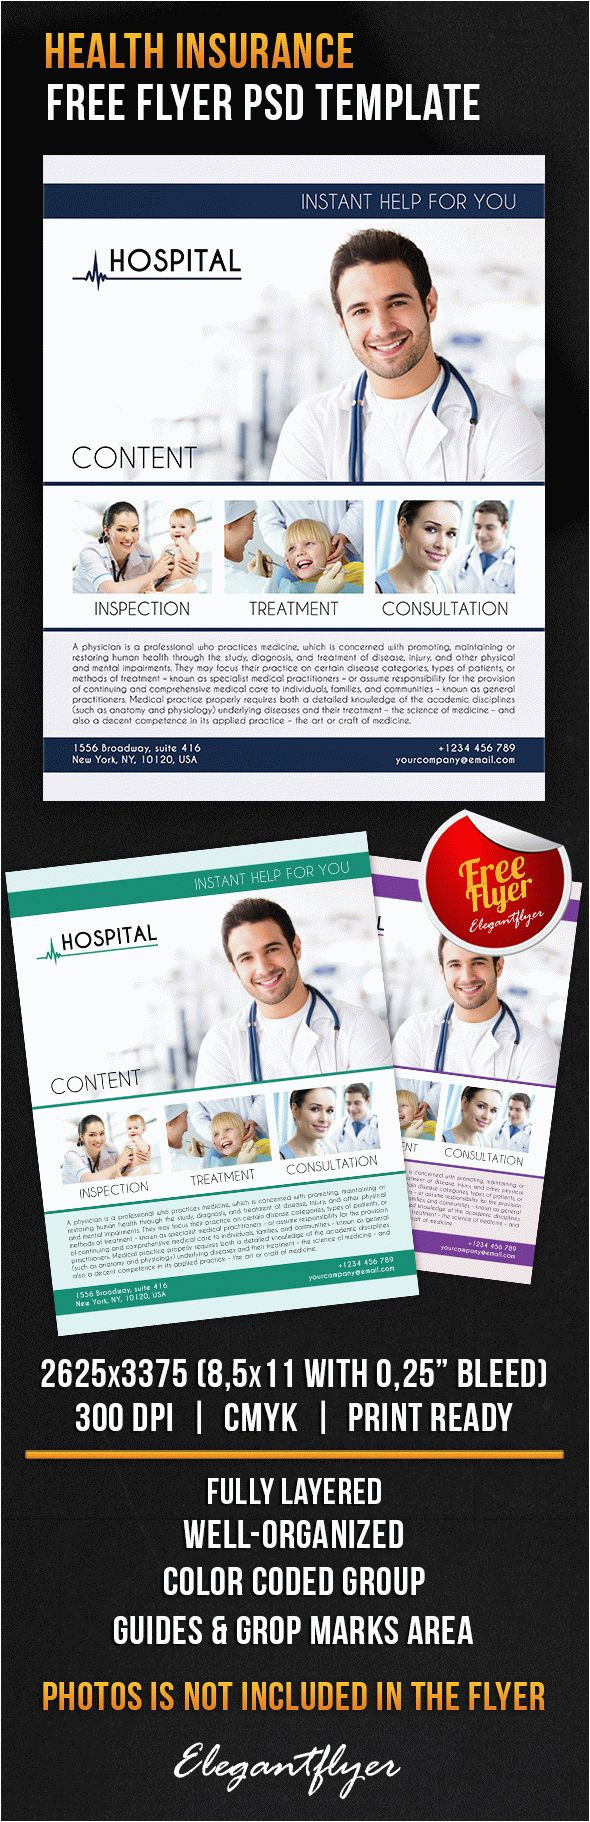 health insurance free flyer psd template